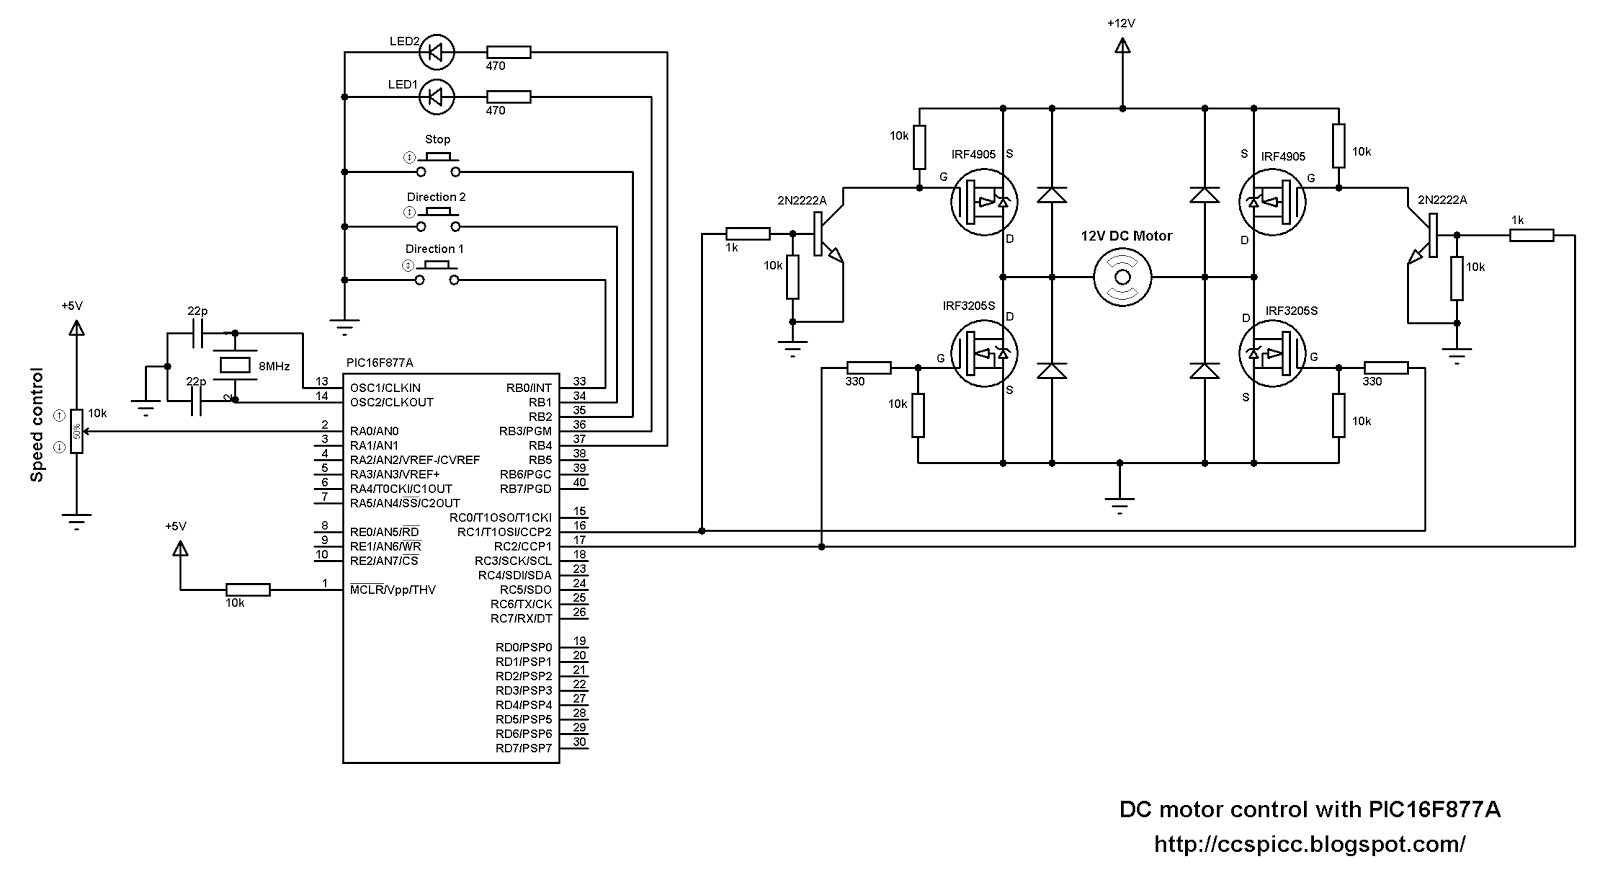 medium resolution of dc motor speed and direction control with pic16f877a and h bridge brushless dc motor control circuit schematic using microchip pic16f877